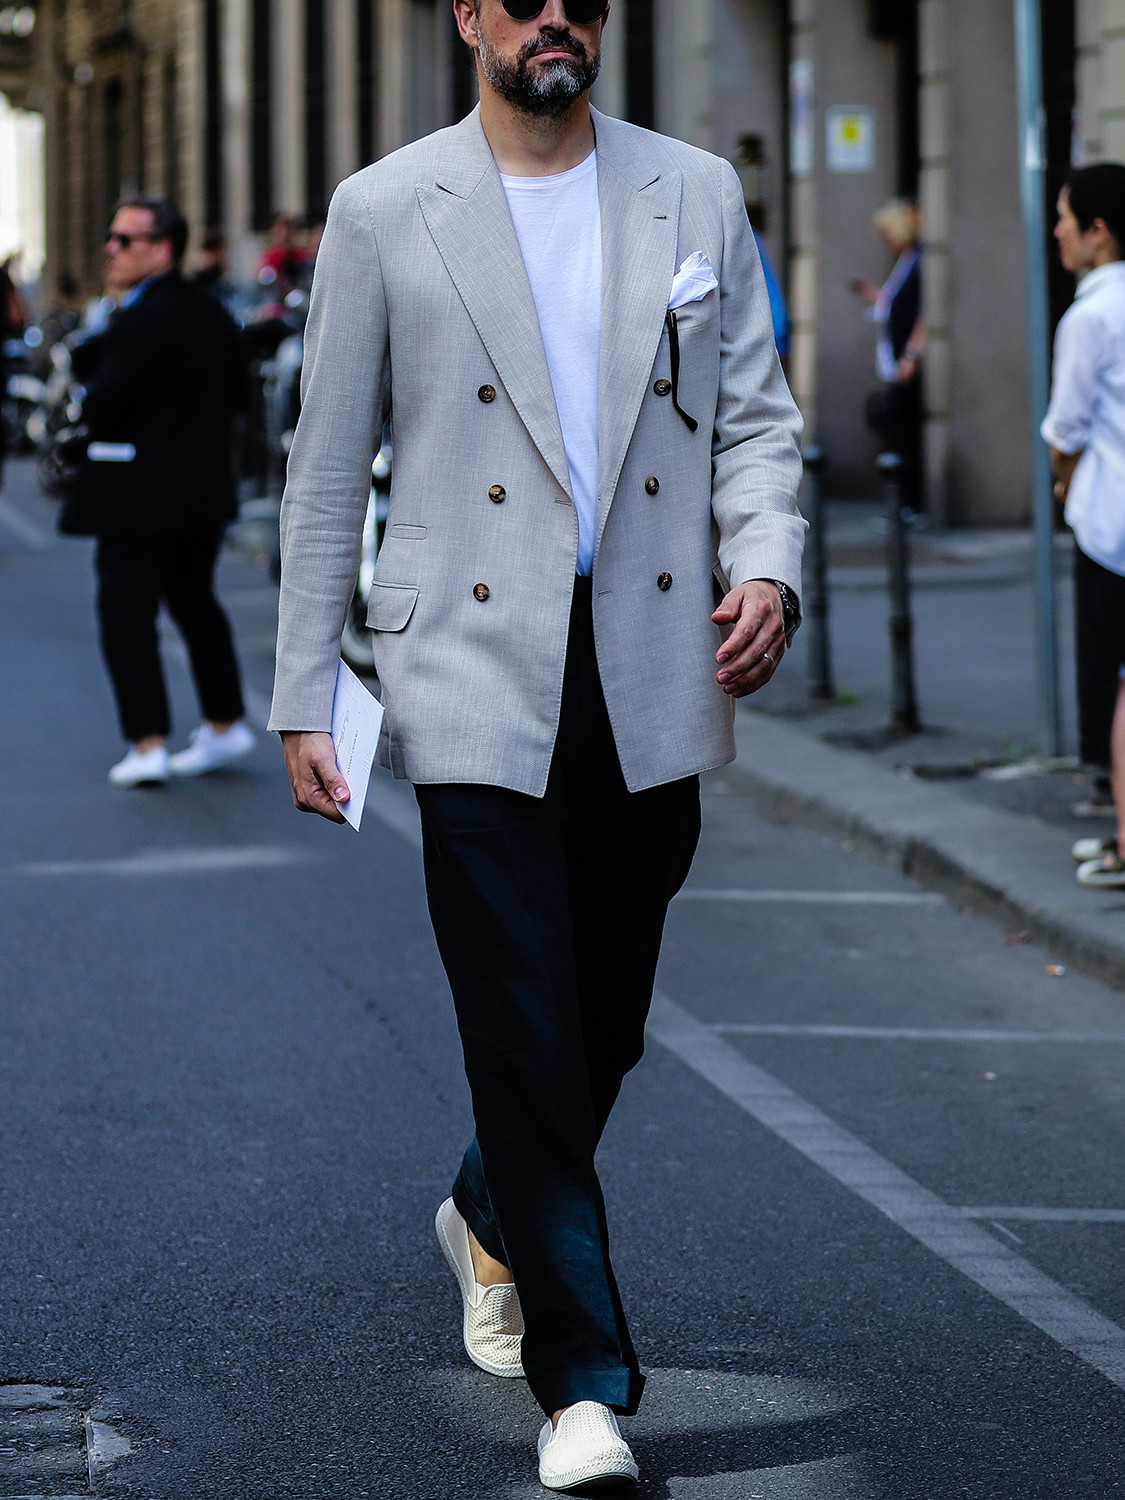 Men's outfit idea for 2021 with grey double-breasted blazer, white crew neck t-shirt, navy linen pants, tortoiseshell sunglasses, neutral espadrilles. Suitable for spring and summer.